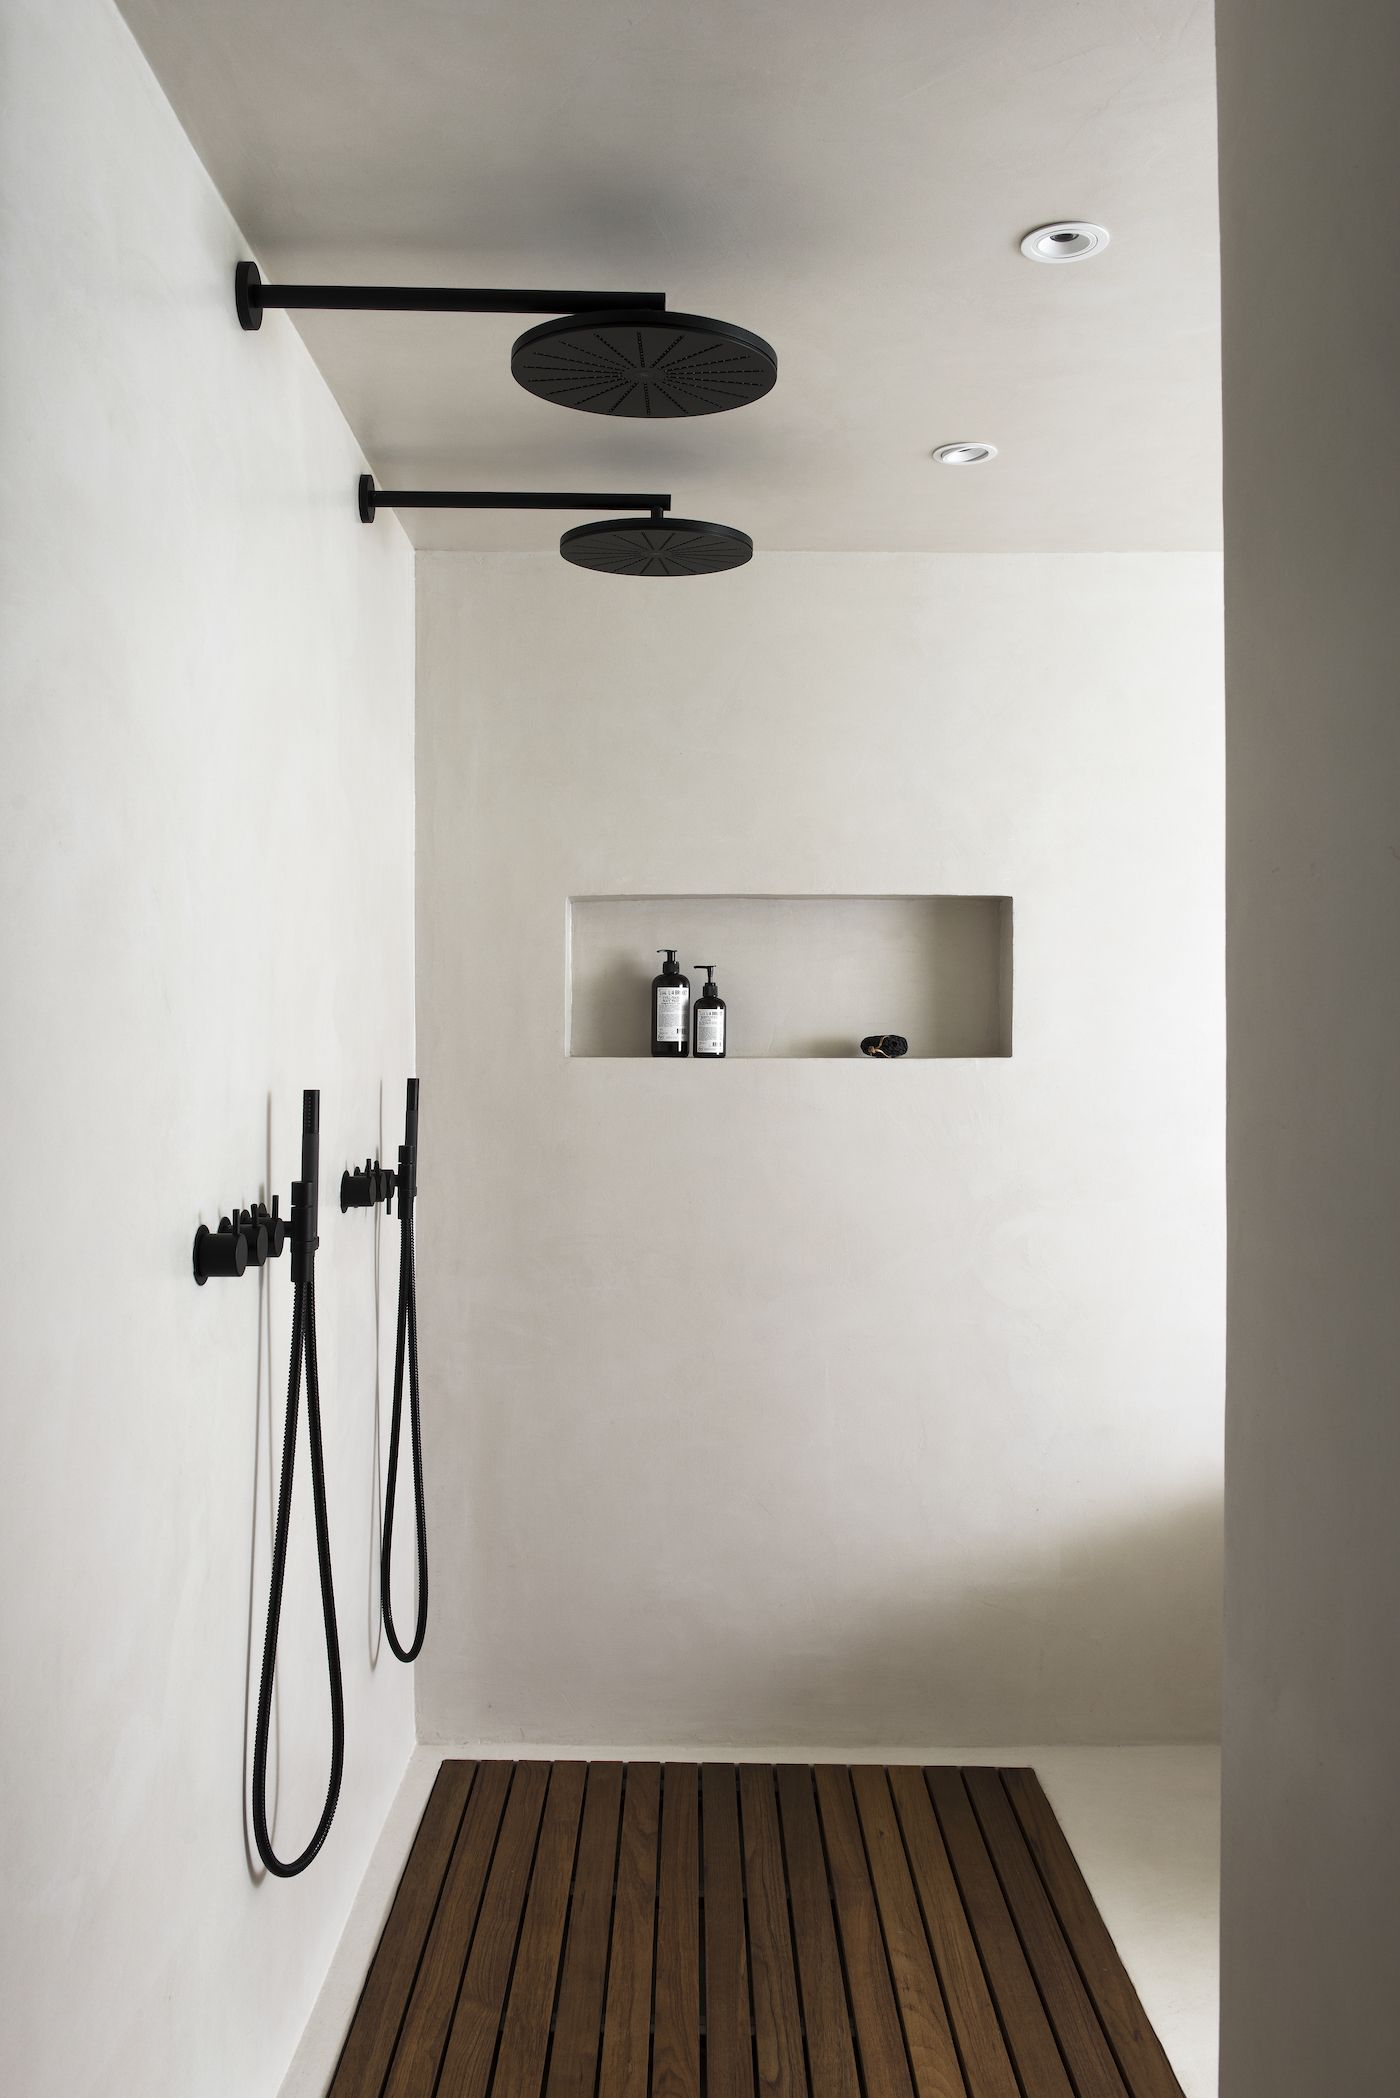 Vola 060 Round Head Shower In Black Interior Design By Laura Seppanen Black And White Desain Interior Kamar Mandi Inspirasi Kamar Mandi Desain Interior Rumah